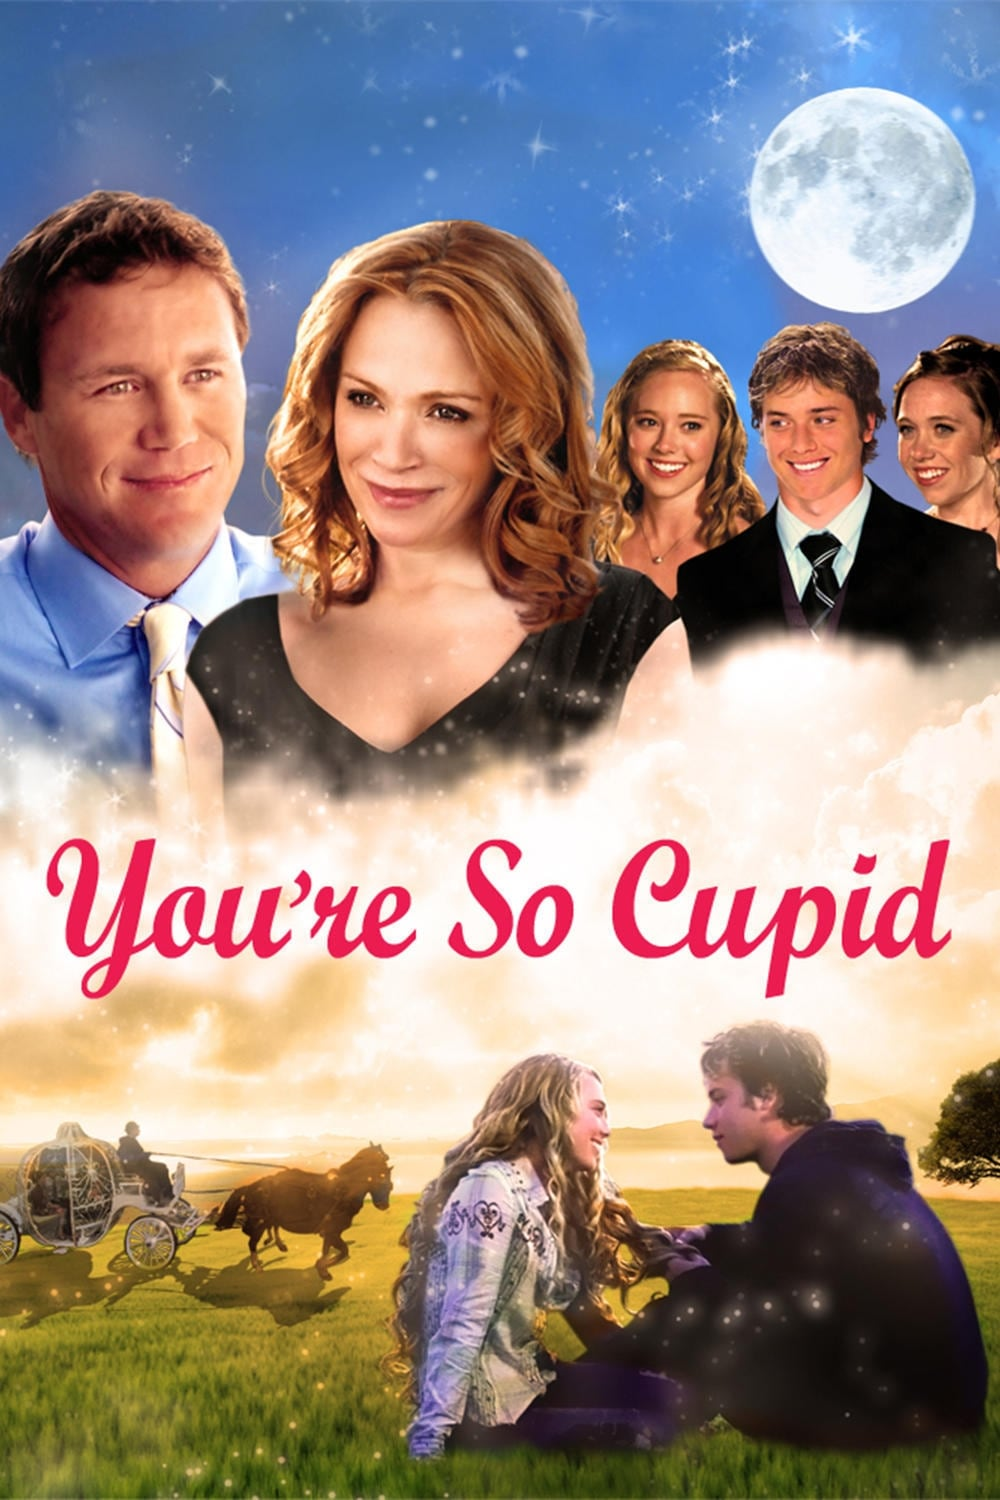 Youre So Cupid (2010) - Posters — The Movie Database (TMDb)